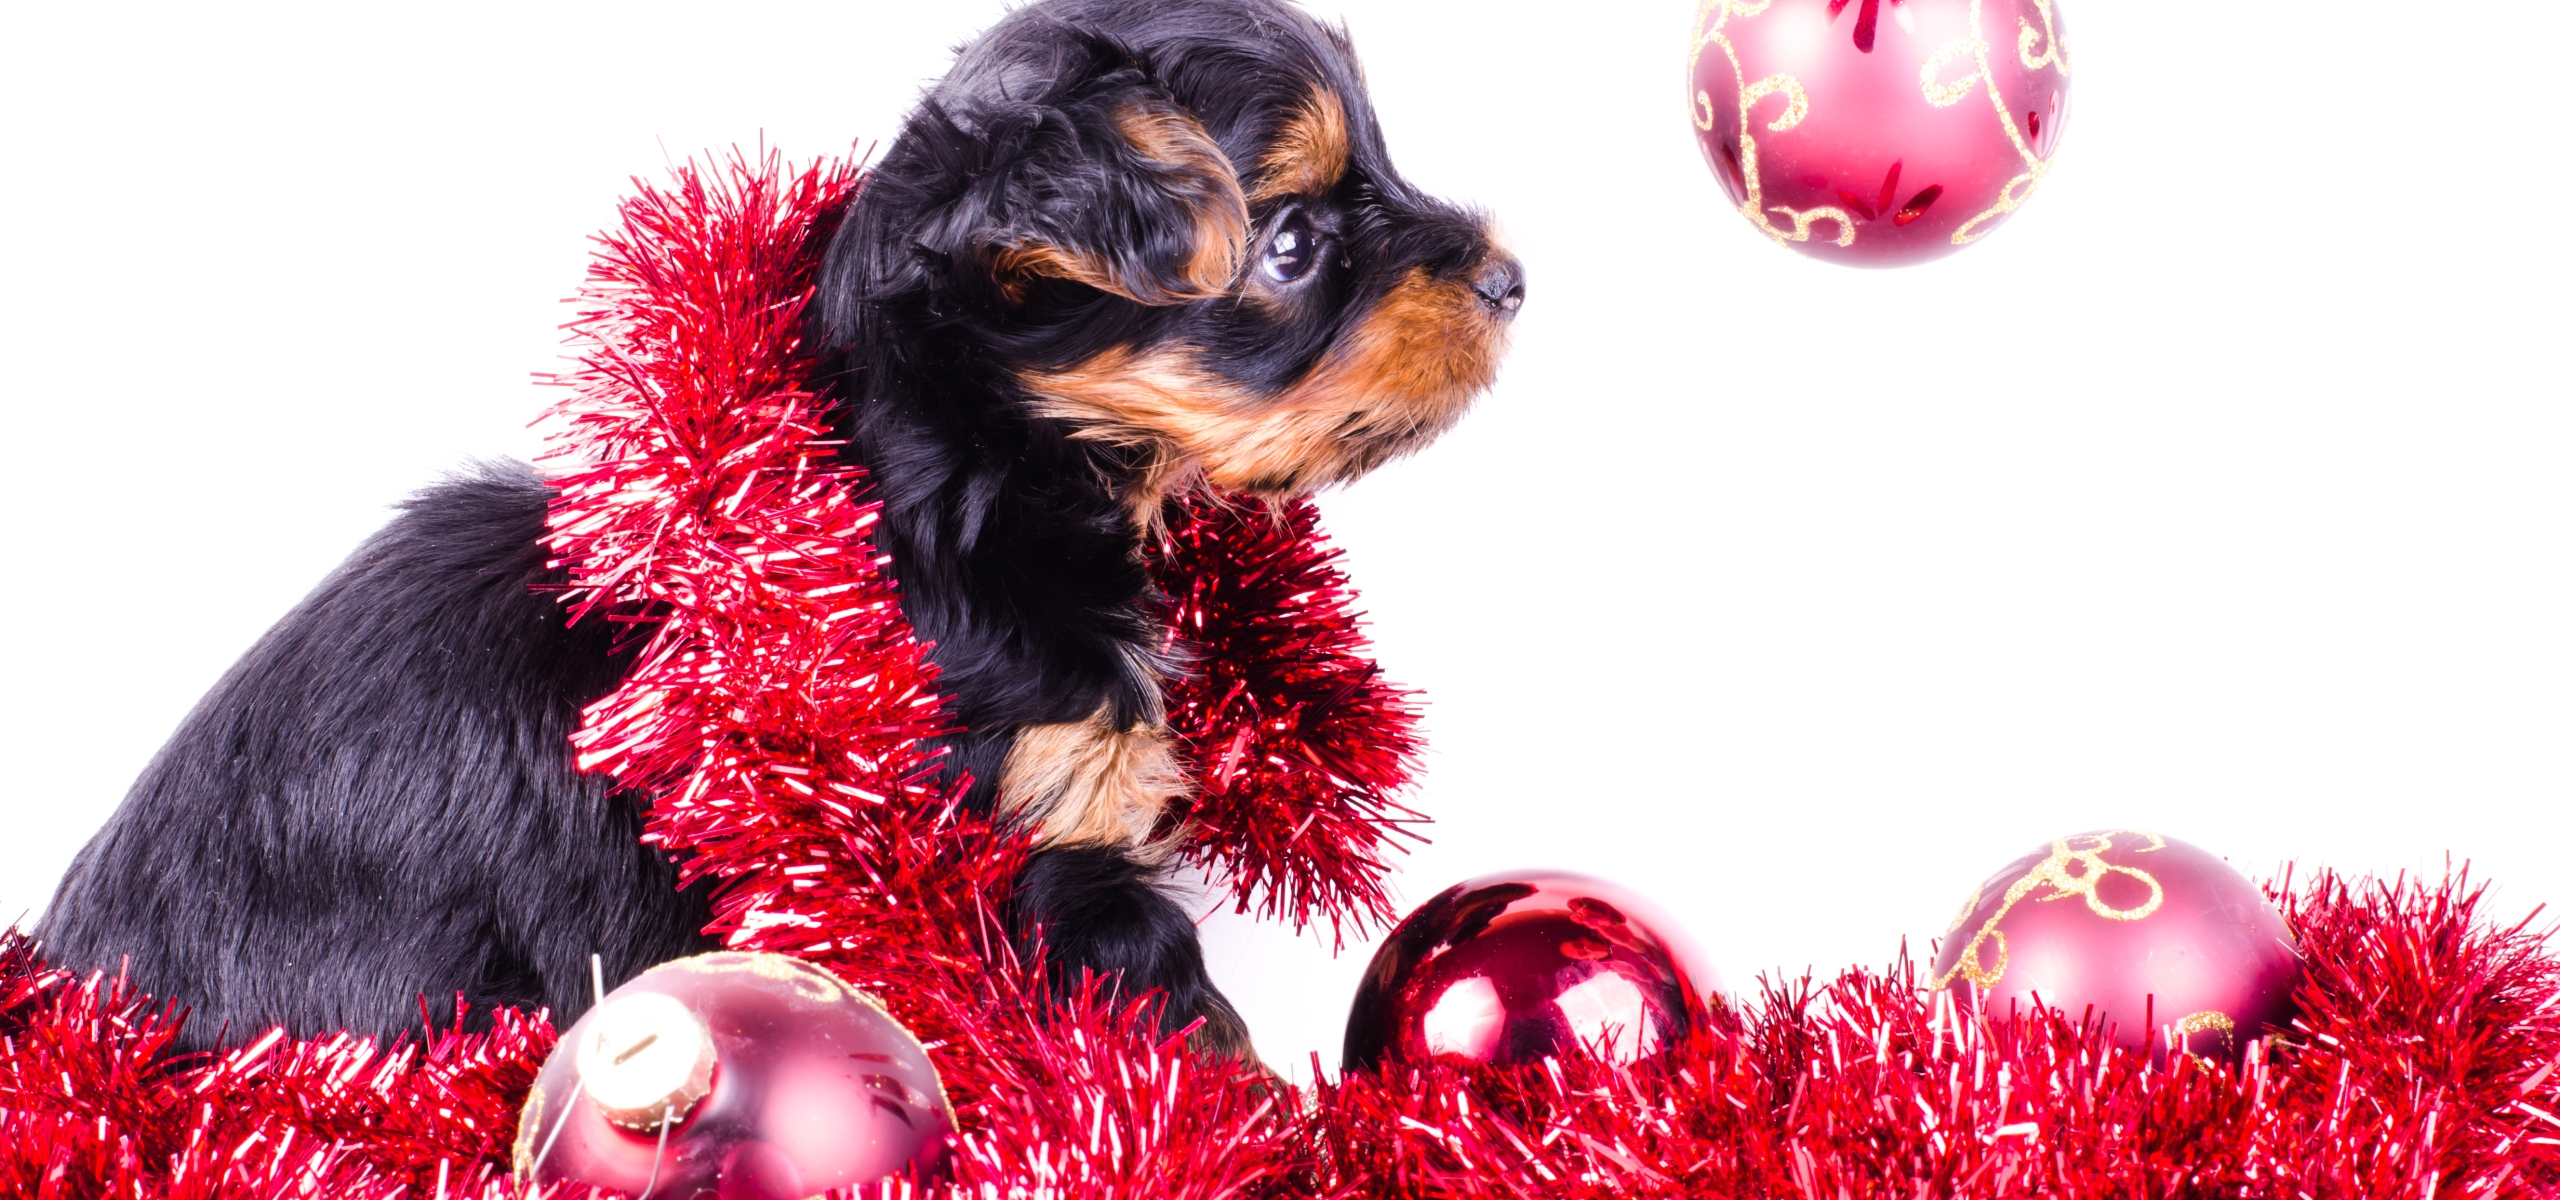 Leesburg veterinary hospitals winter holiday safety tips leesburg the hustle and bustle of the holiday season is here as you gear up for a season full of festivities and merriment be sure to take your pets well being m4hsunfo